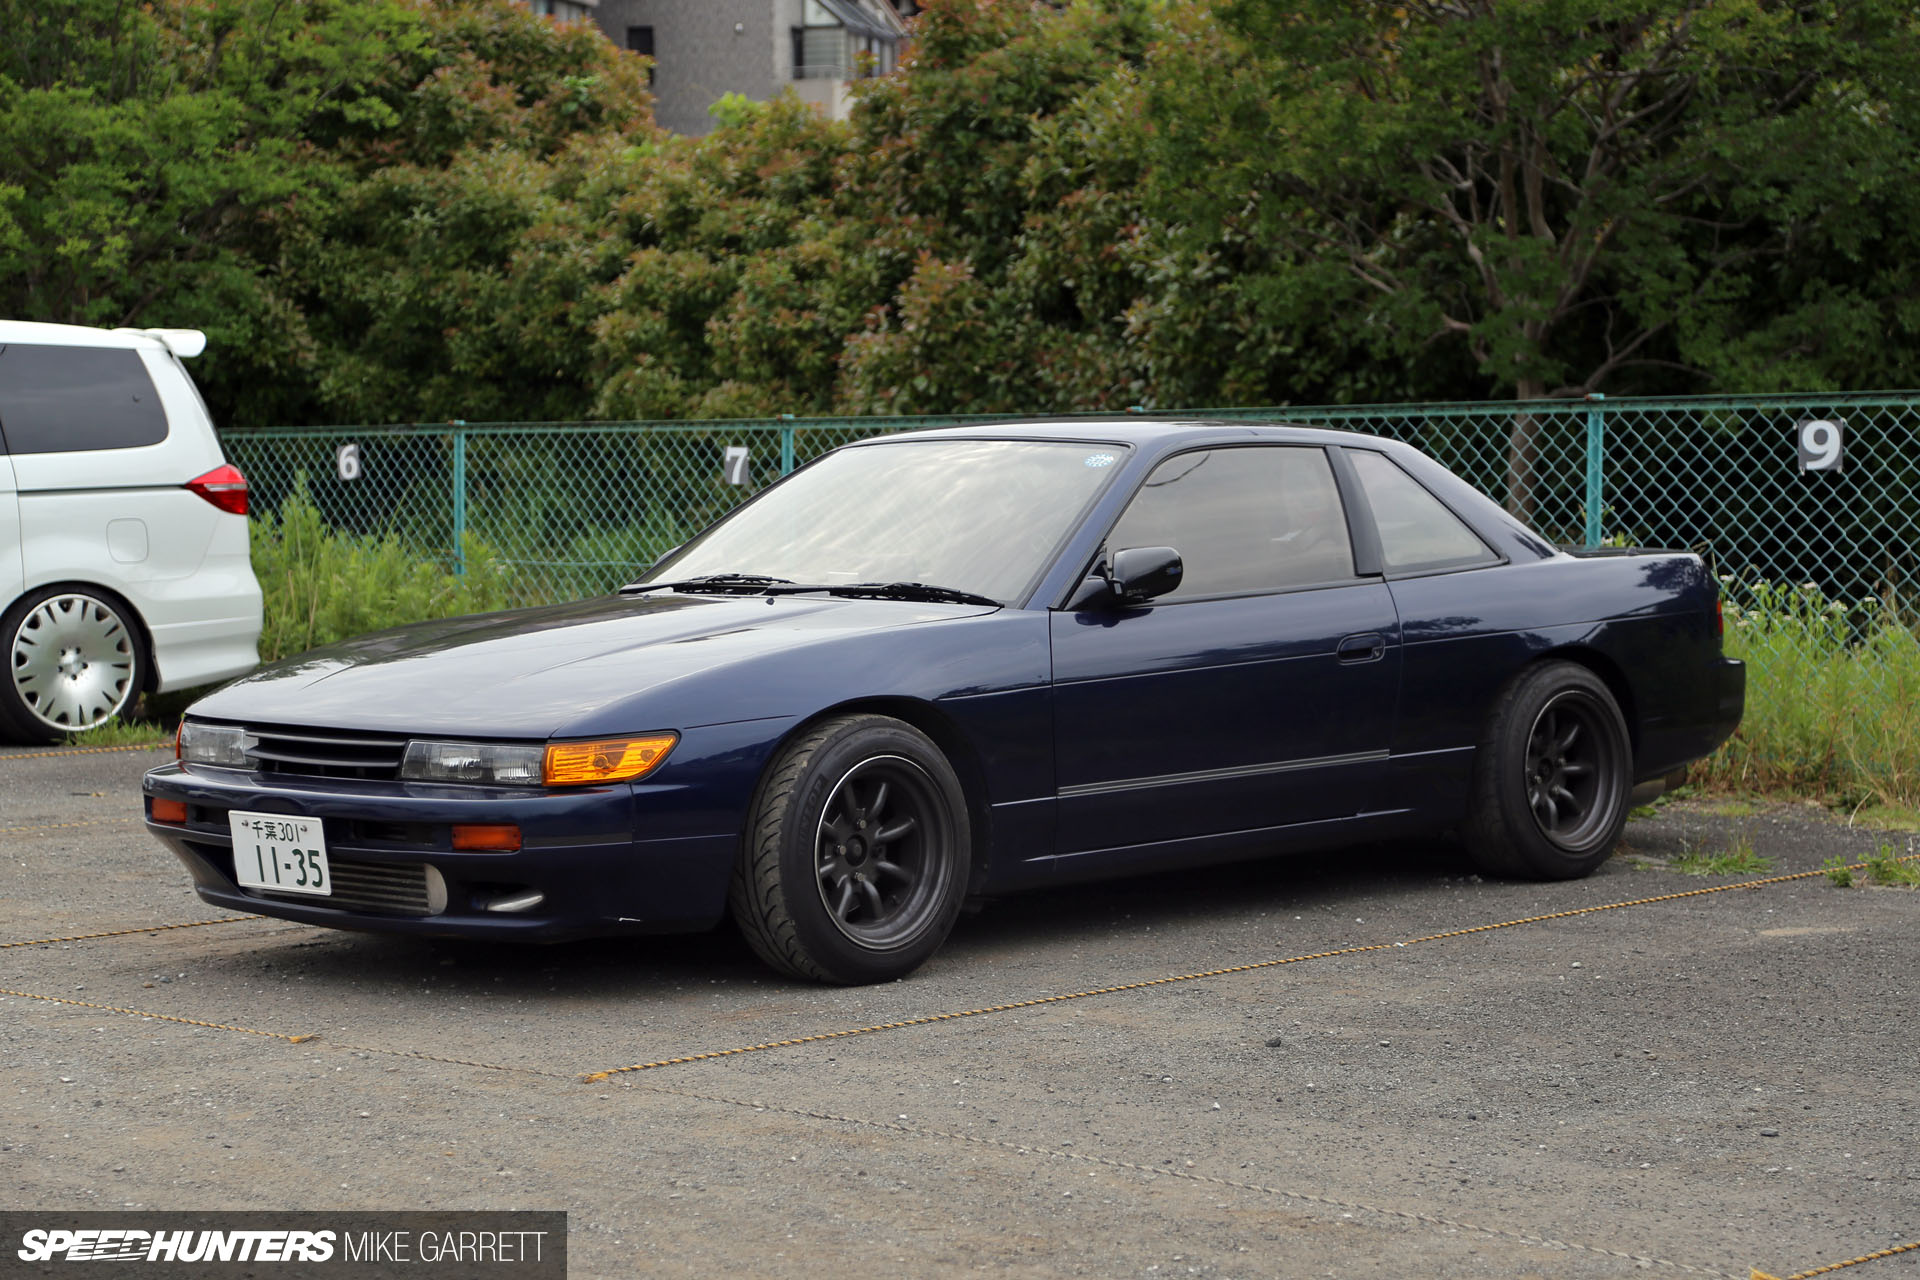 Endangered Species: The Simple & Clean S13